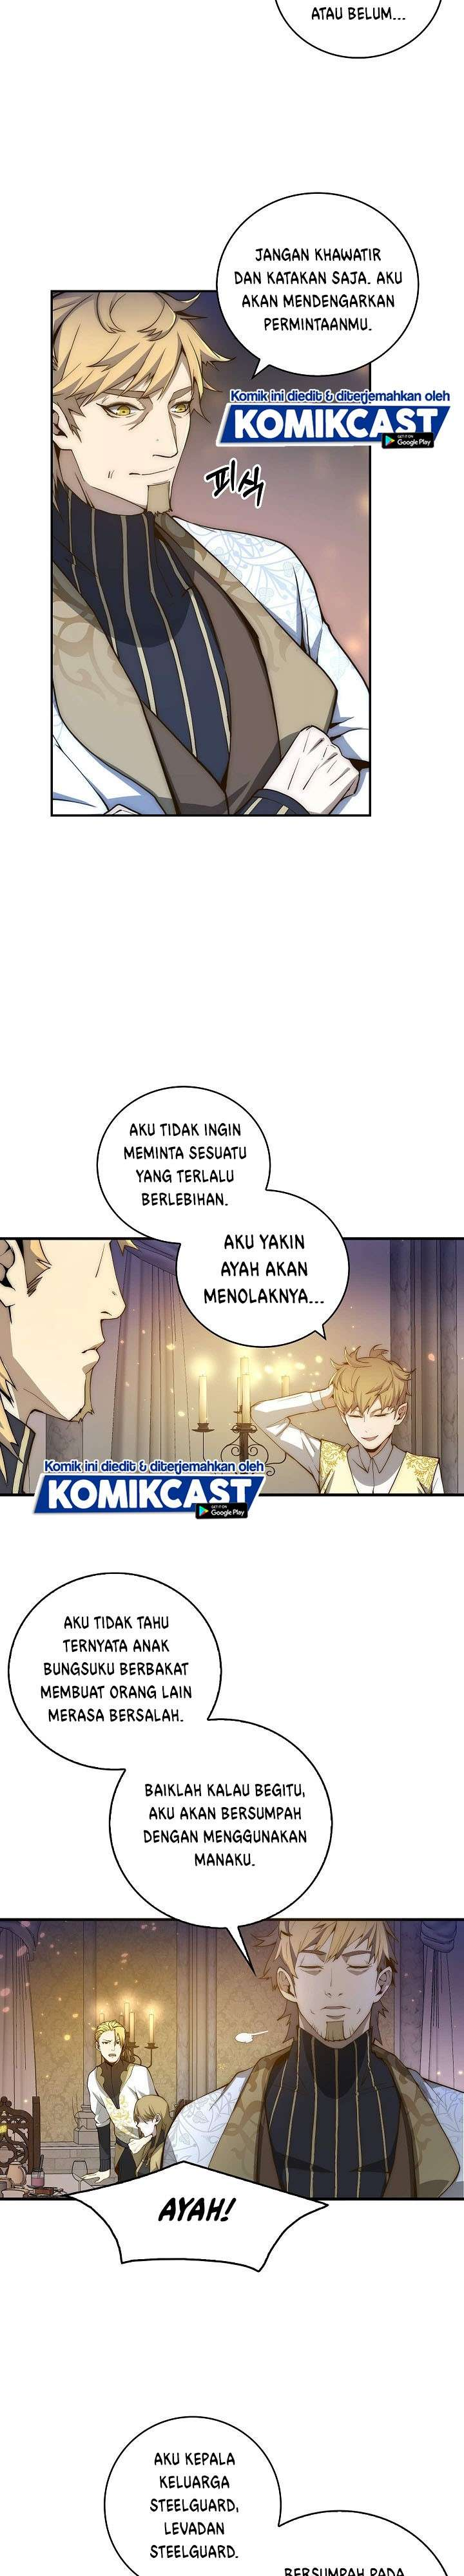 The Lord's Coins Aren't Decreasing?! Chapter 04 Bahasa Indonesia page 29